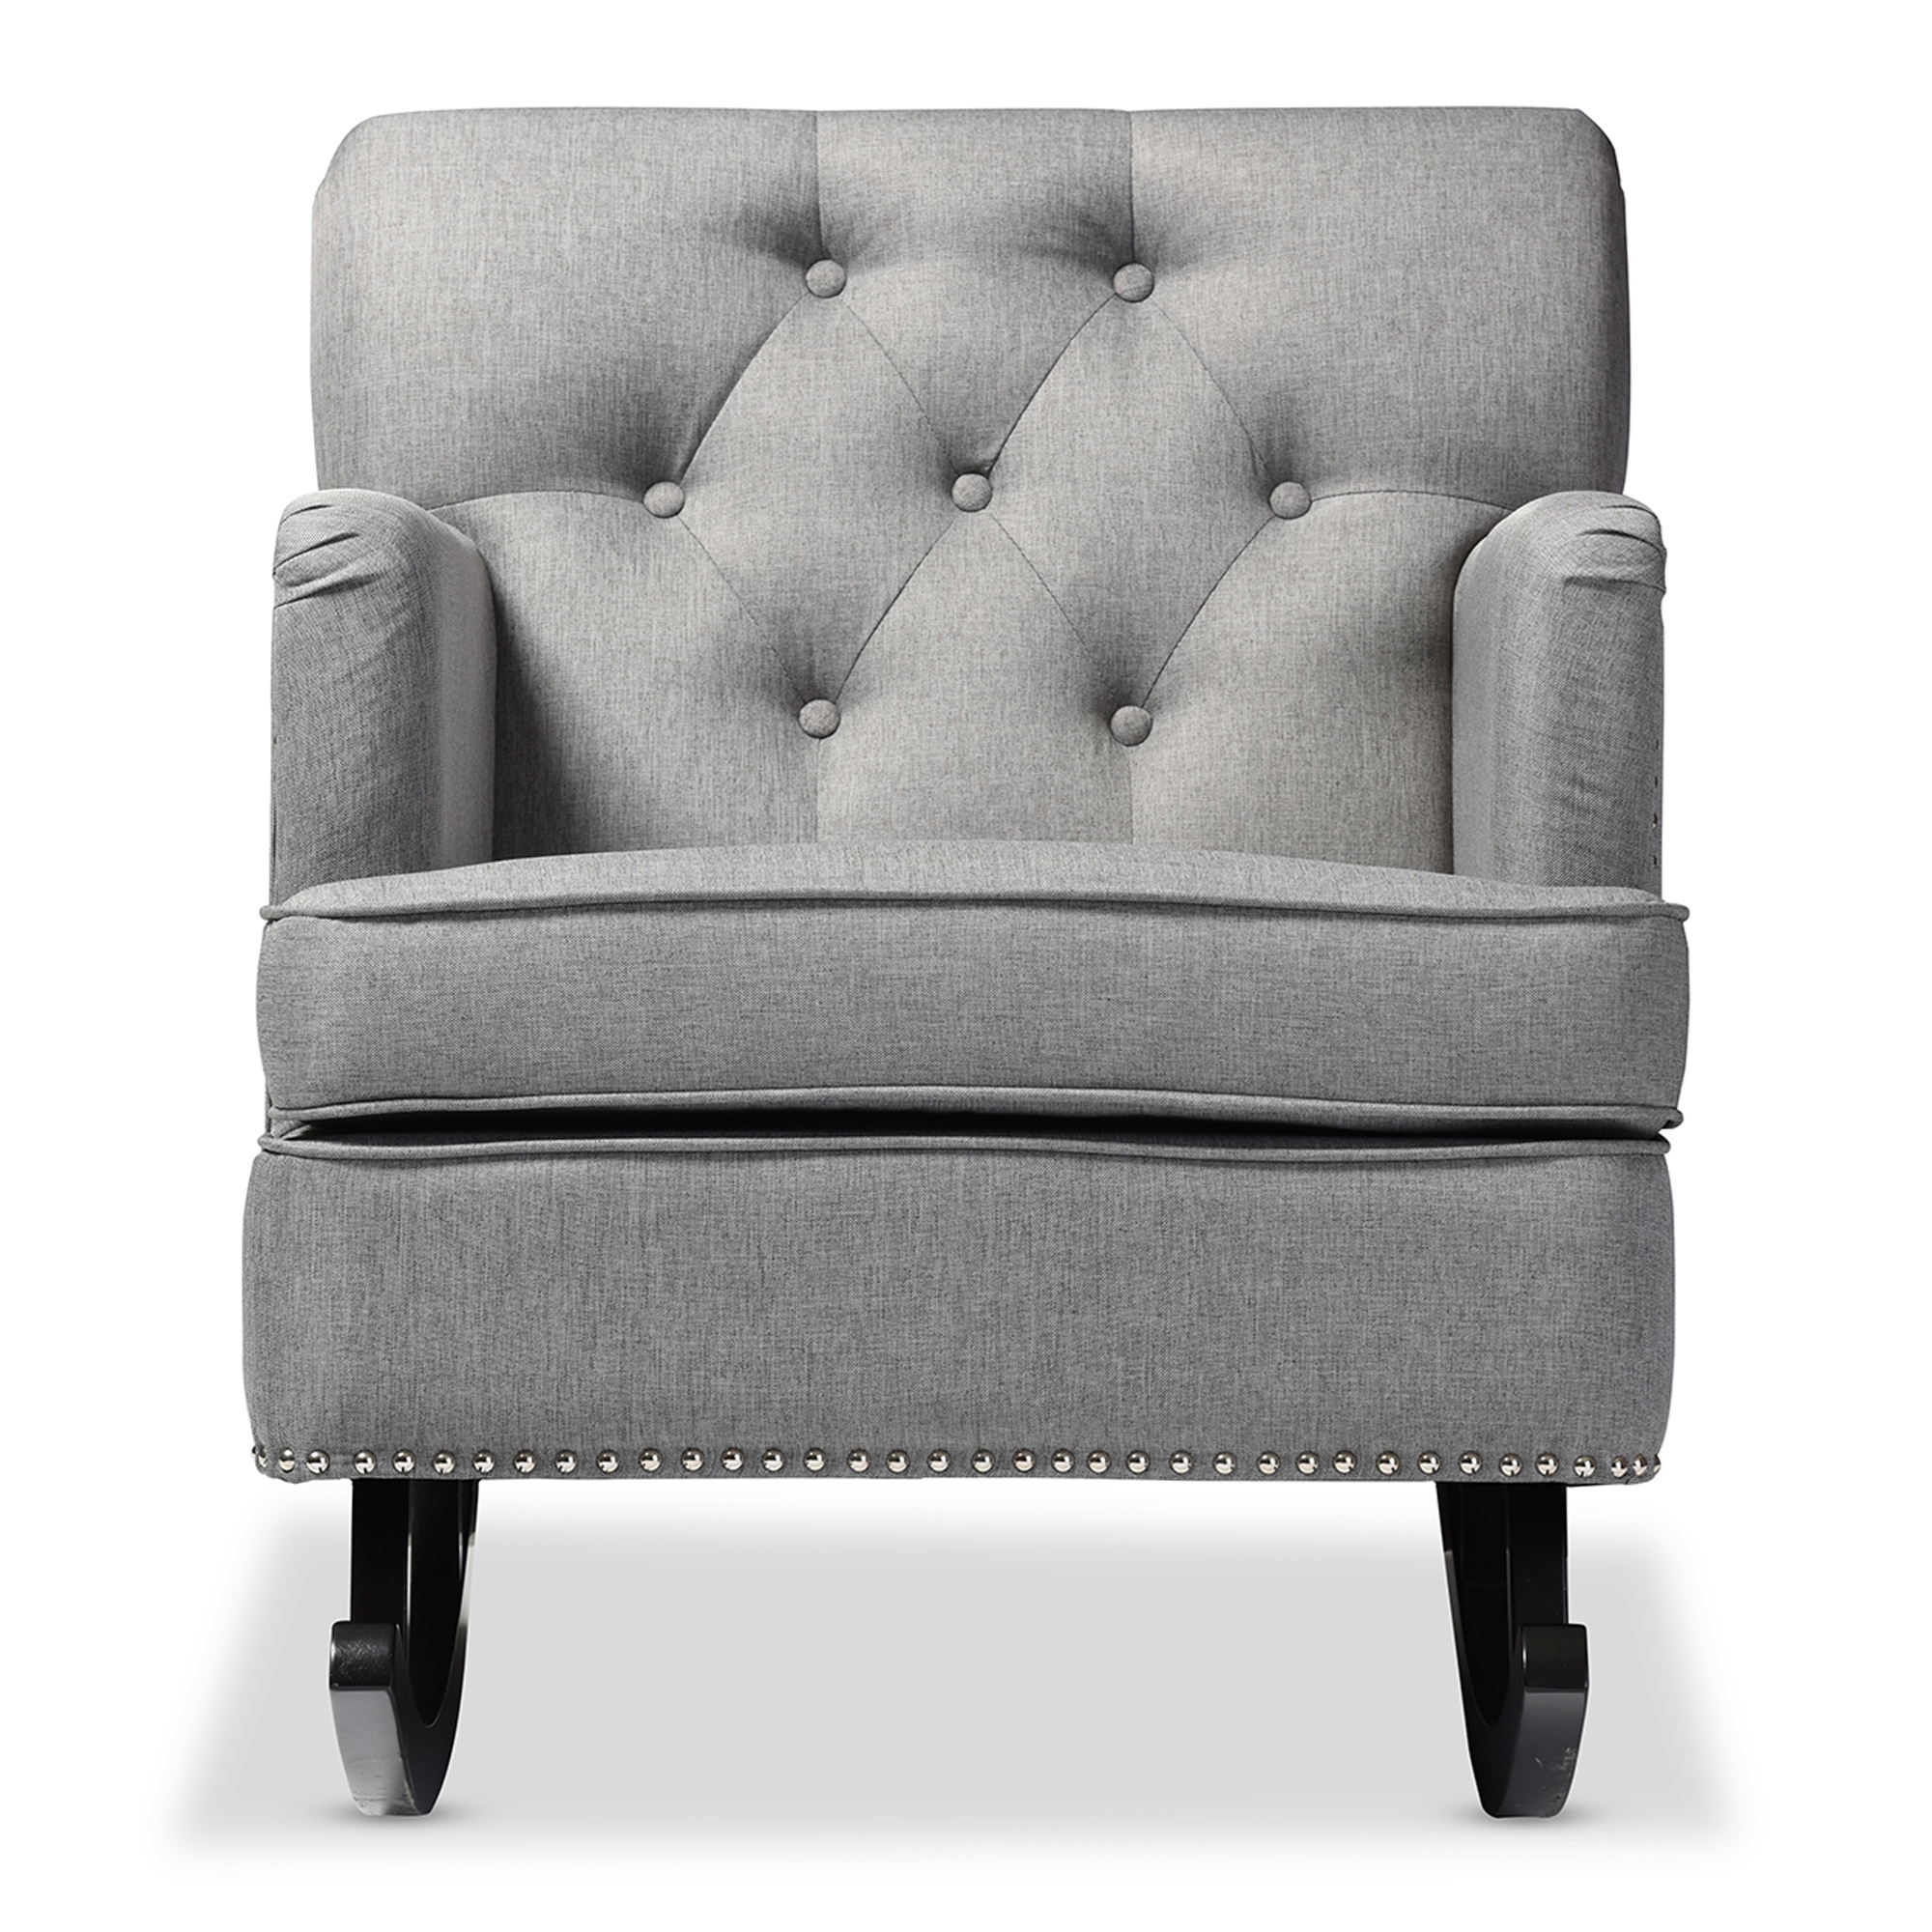 Baxton Studio Bethany Modern /& Contemporary Fabric Upholstered Button-Tufted Rocking Chair Grey